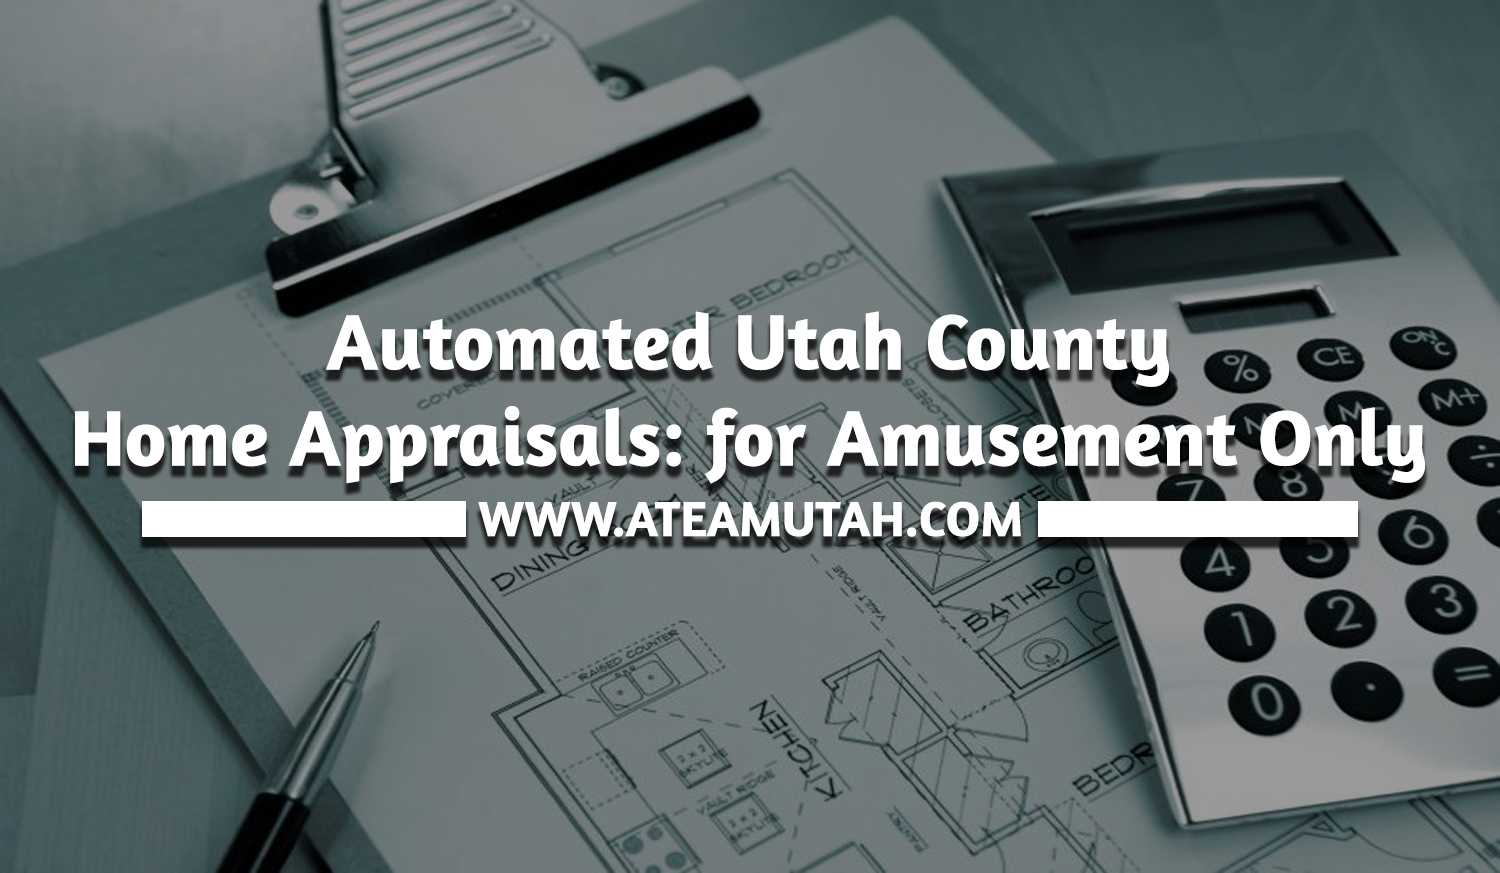 Automated Utah County Home Appraisals: for Amusement Only